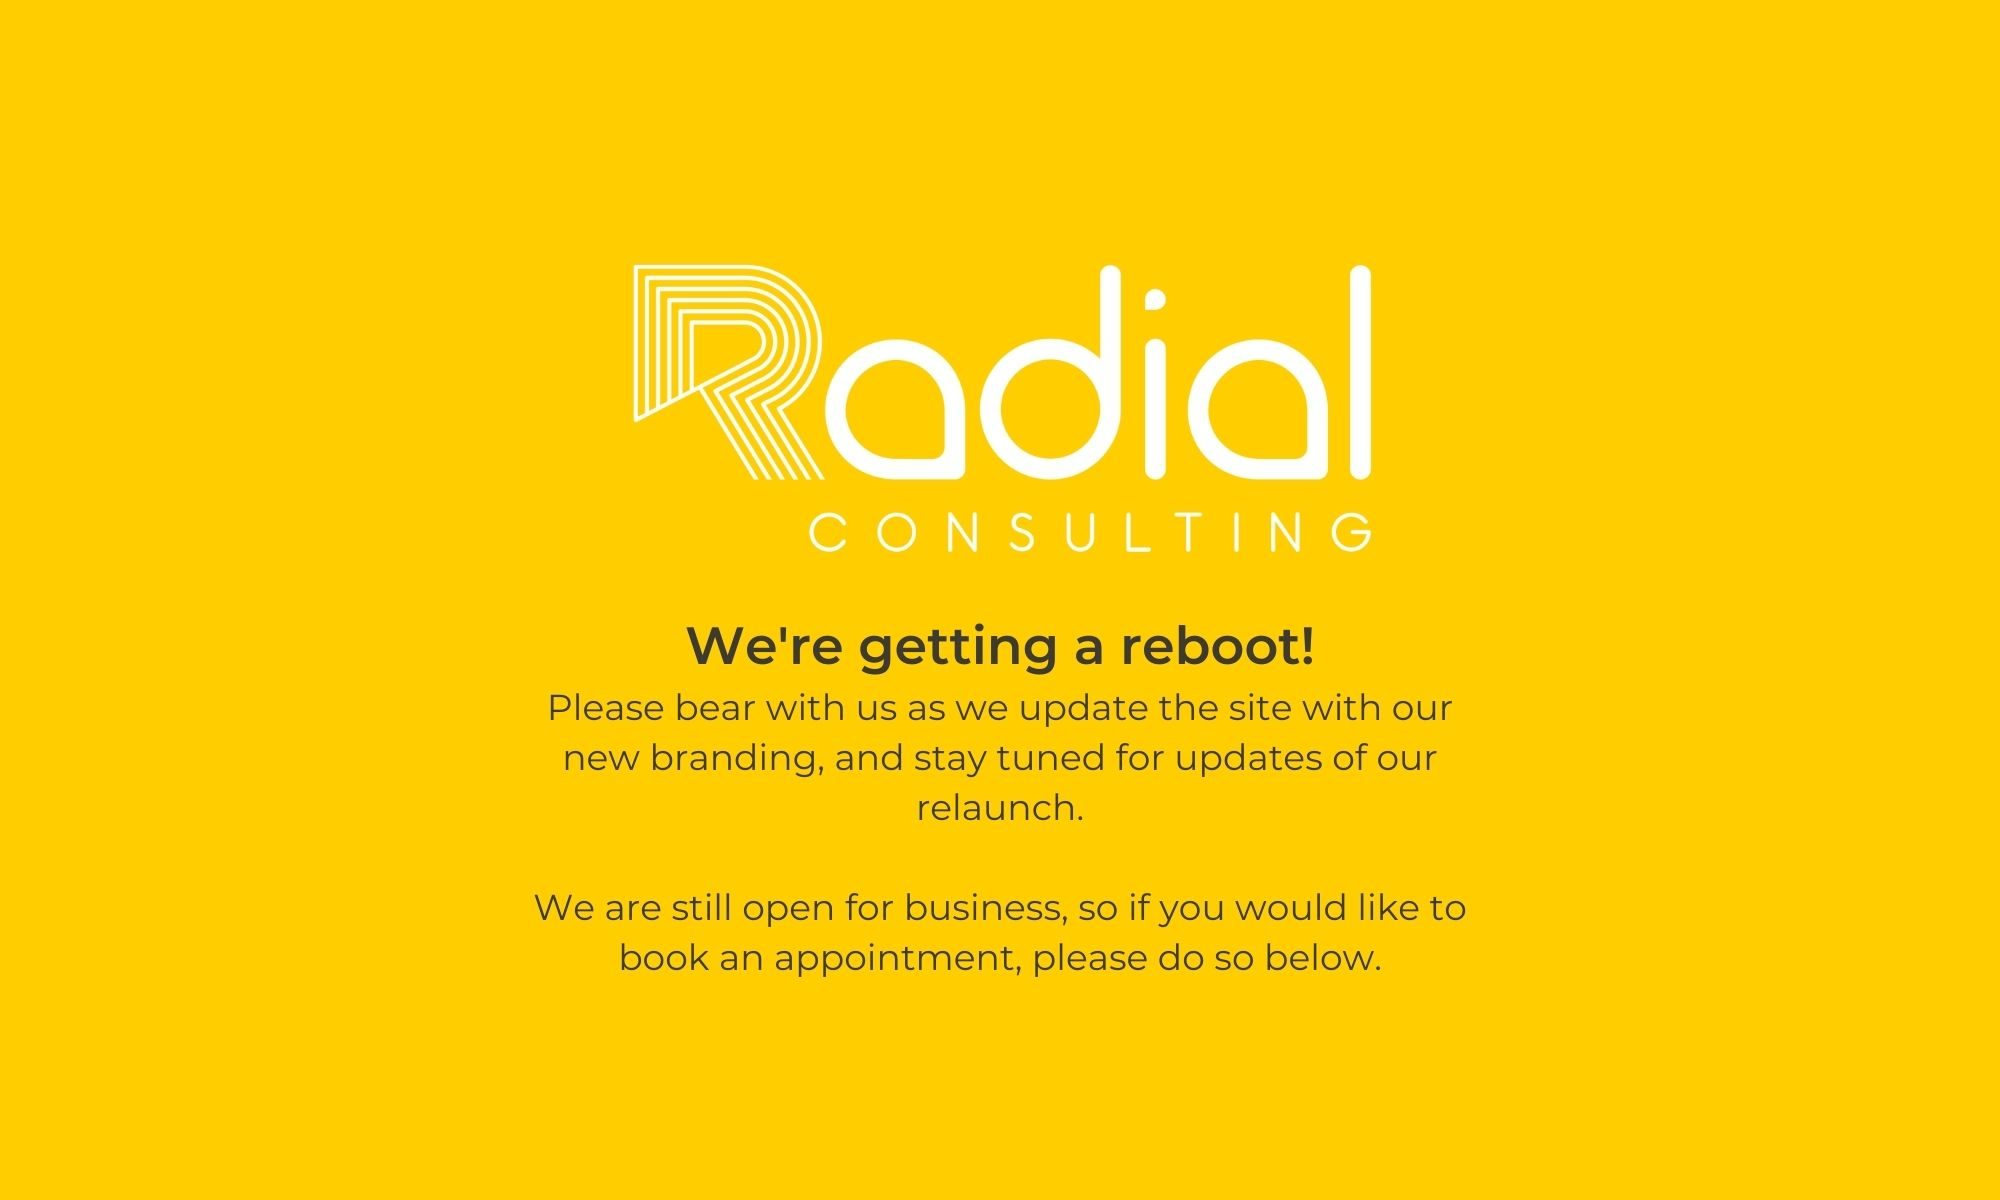 Radial Consulting